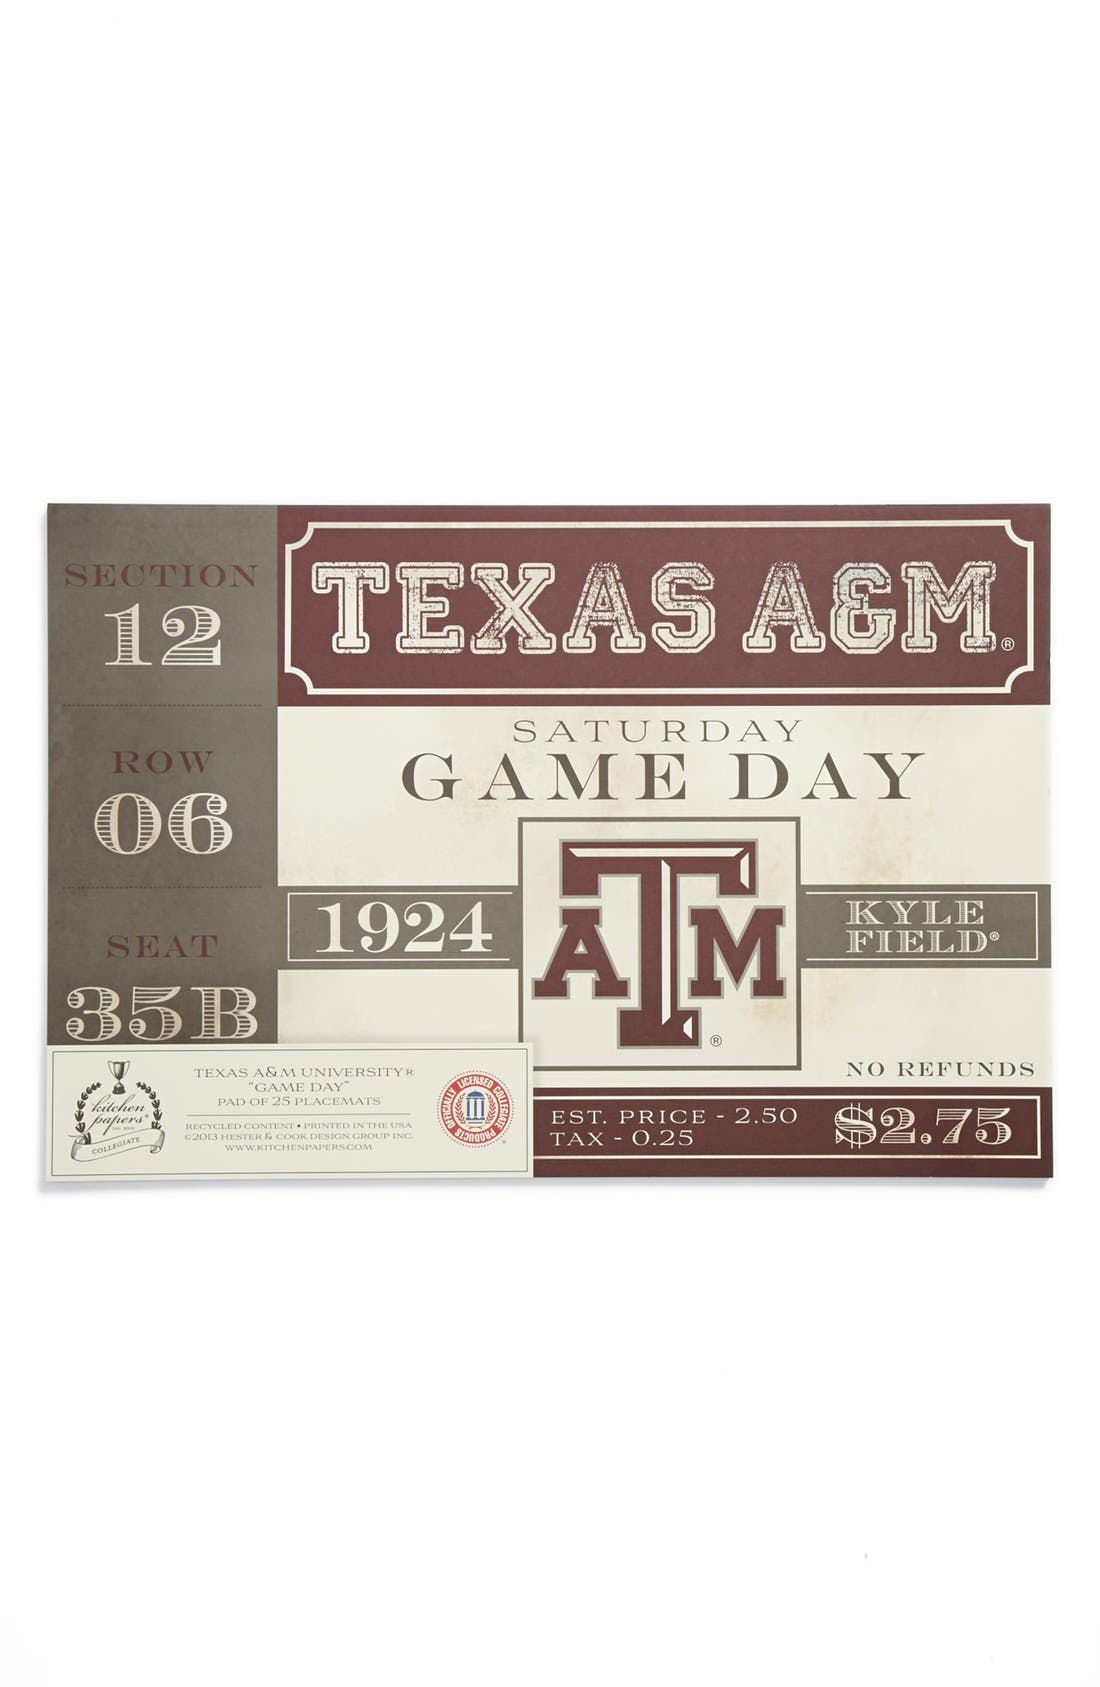 Alternate Image 1 Selected - Kitchen Papers by Cake 'Vintage Ticket - Texas A&M Aggies' Paper Placemat Pad